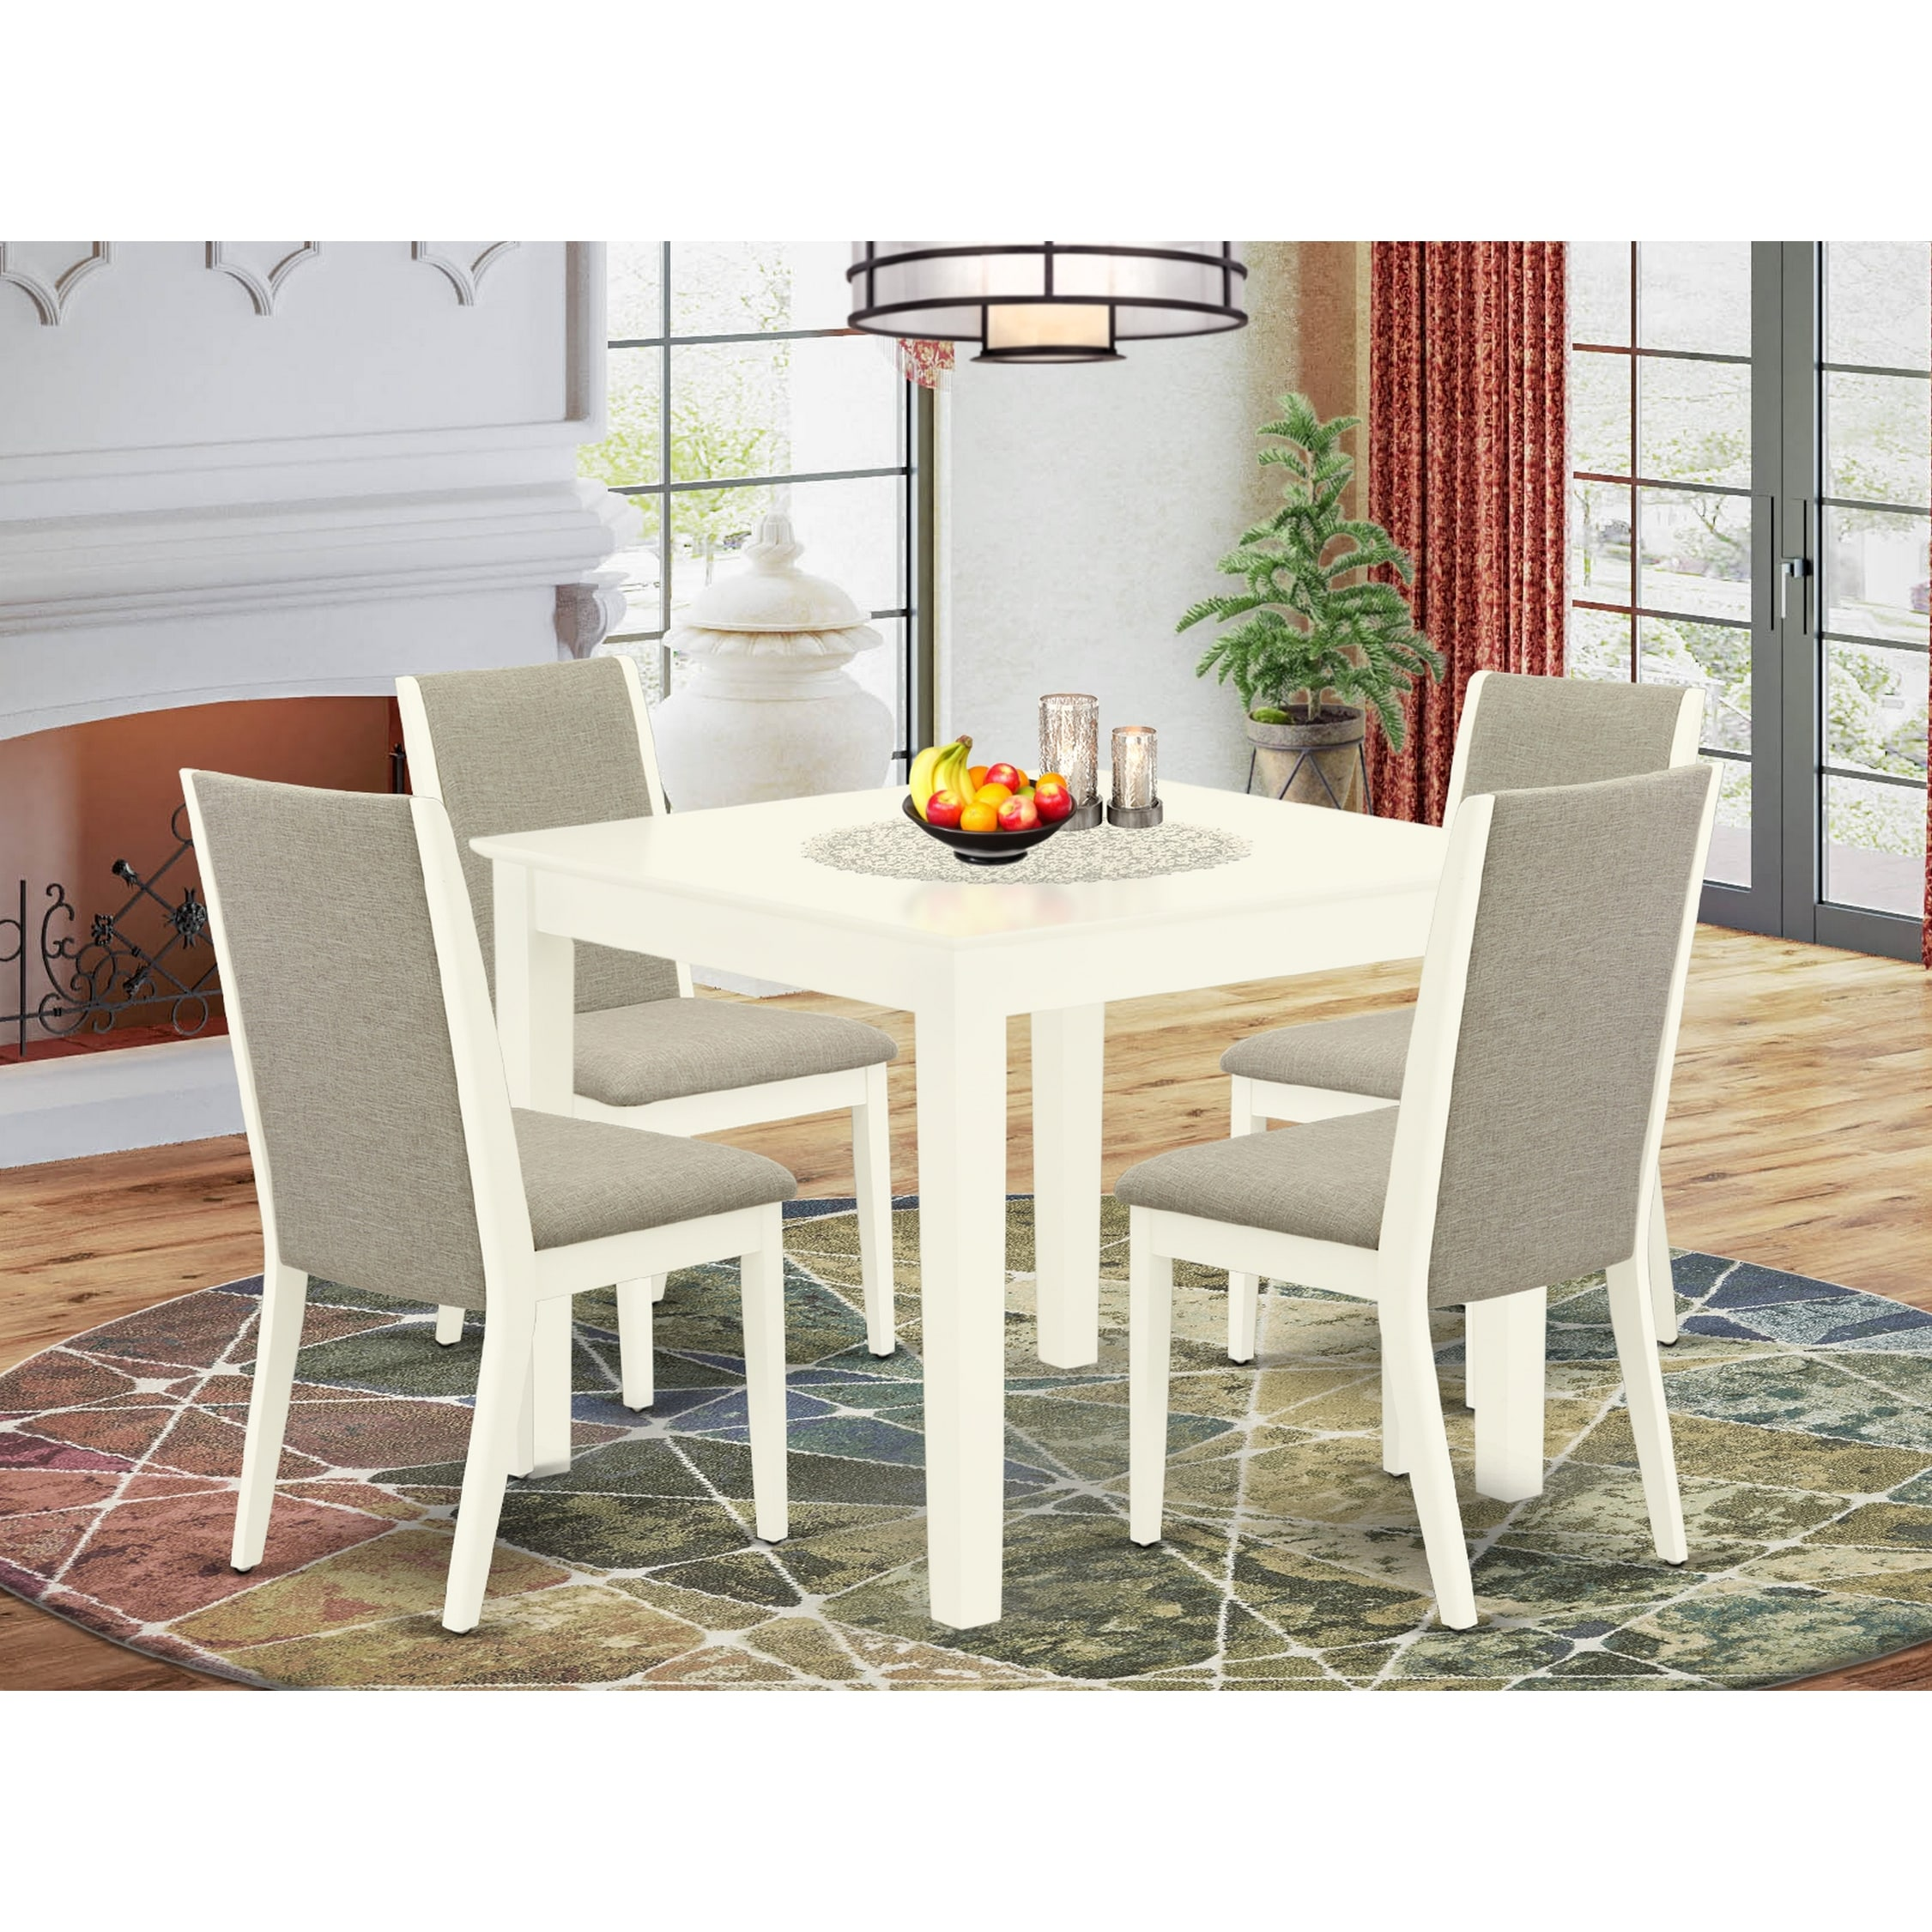 Shop Oxla5 Lwh 06 5 Pc Dining Room Set 4 Parson Chairs And Rectangle Wood Table High Back Linen White Finish Overstock 32085541 Grey